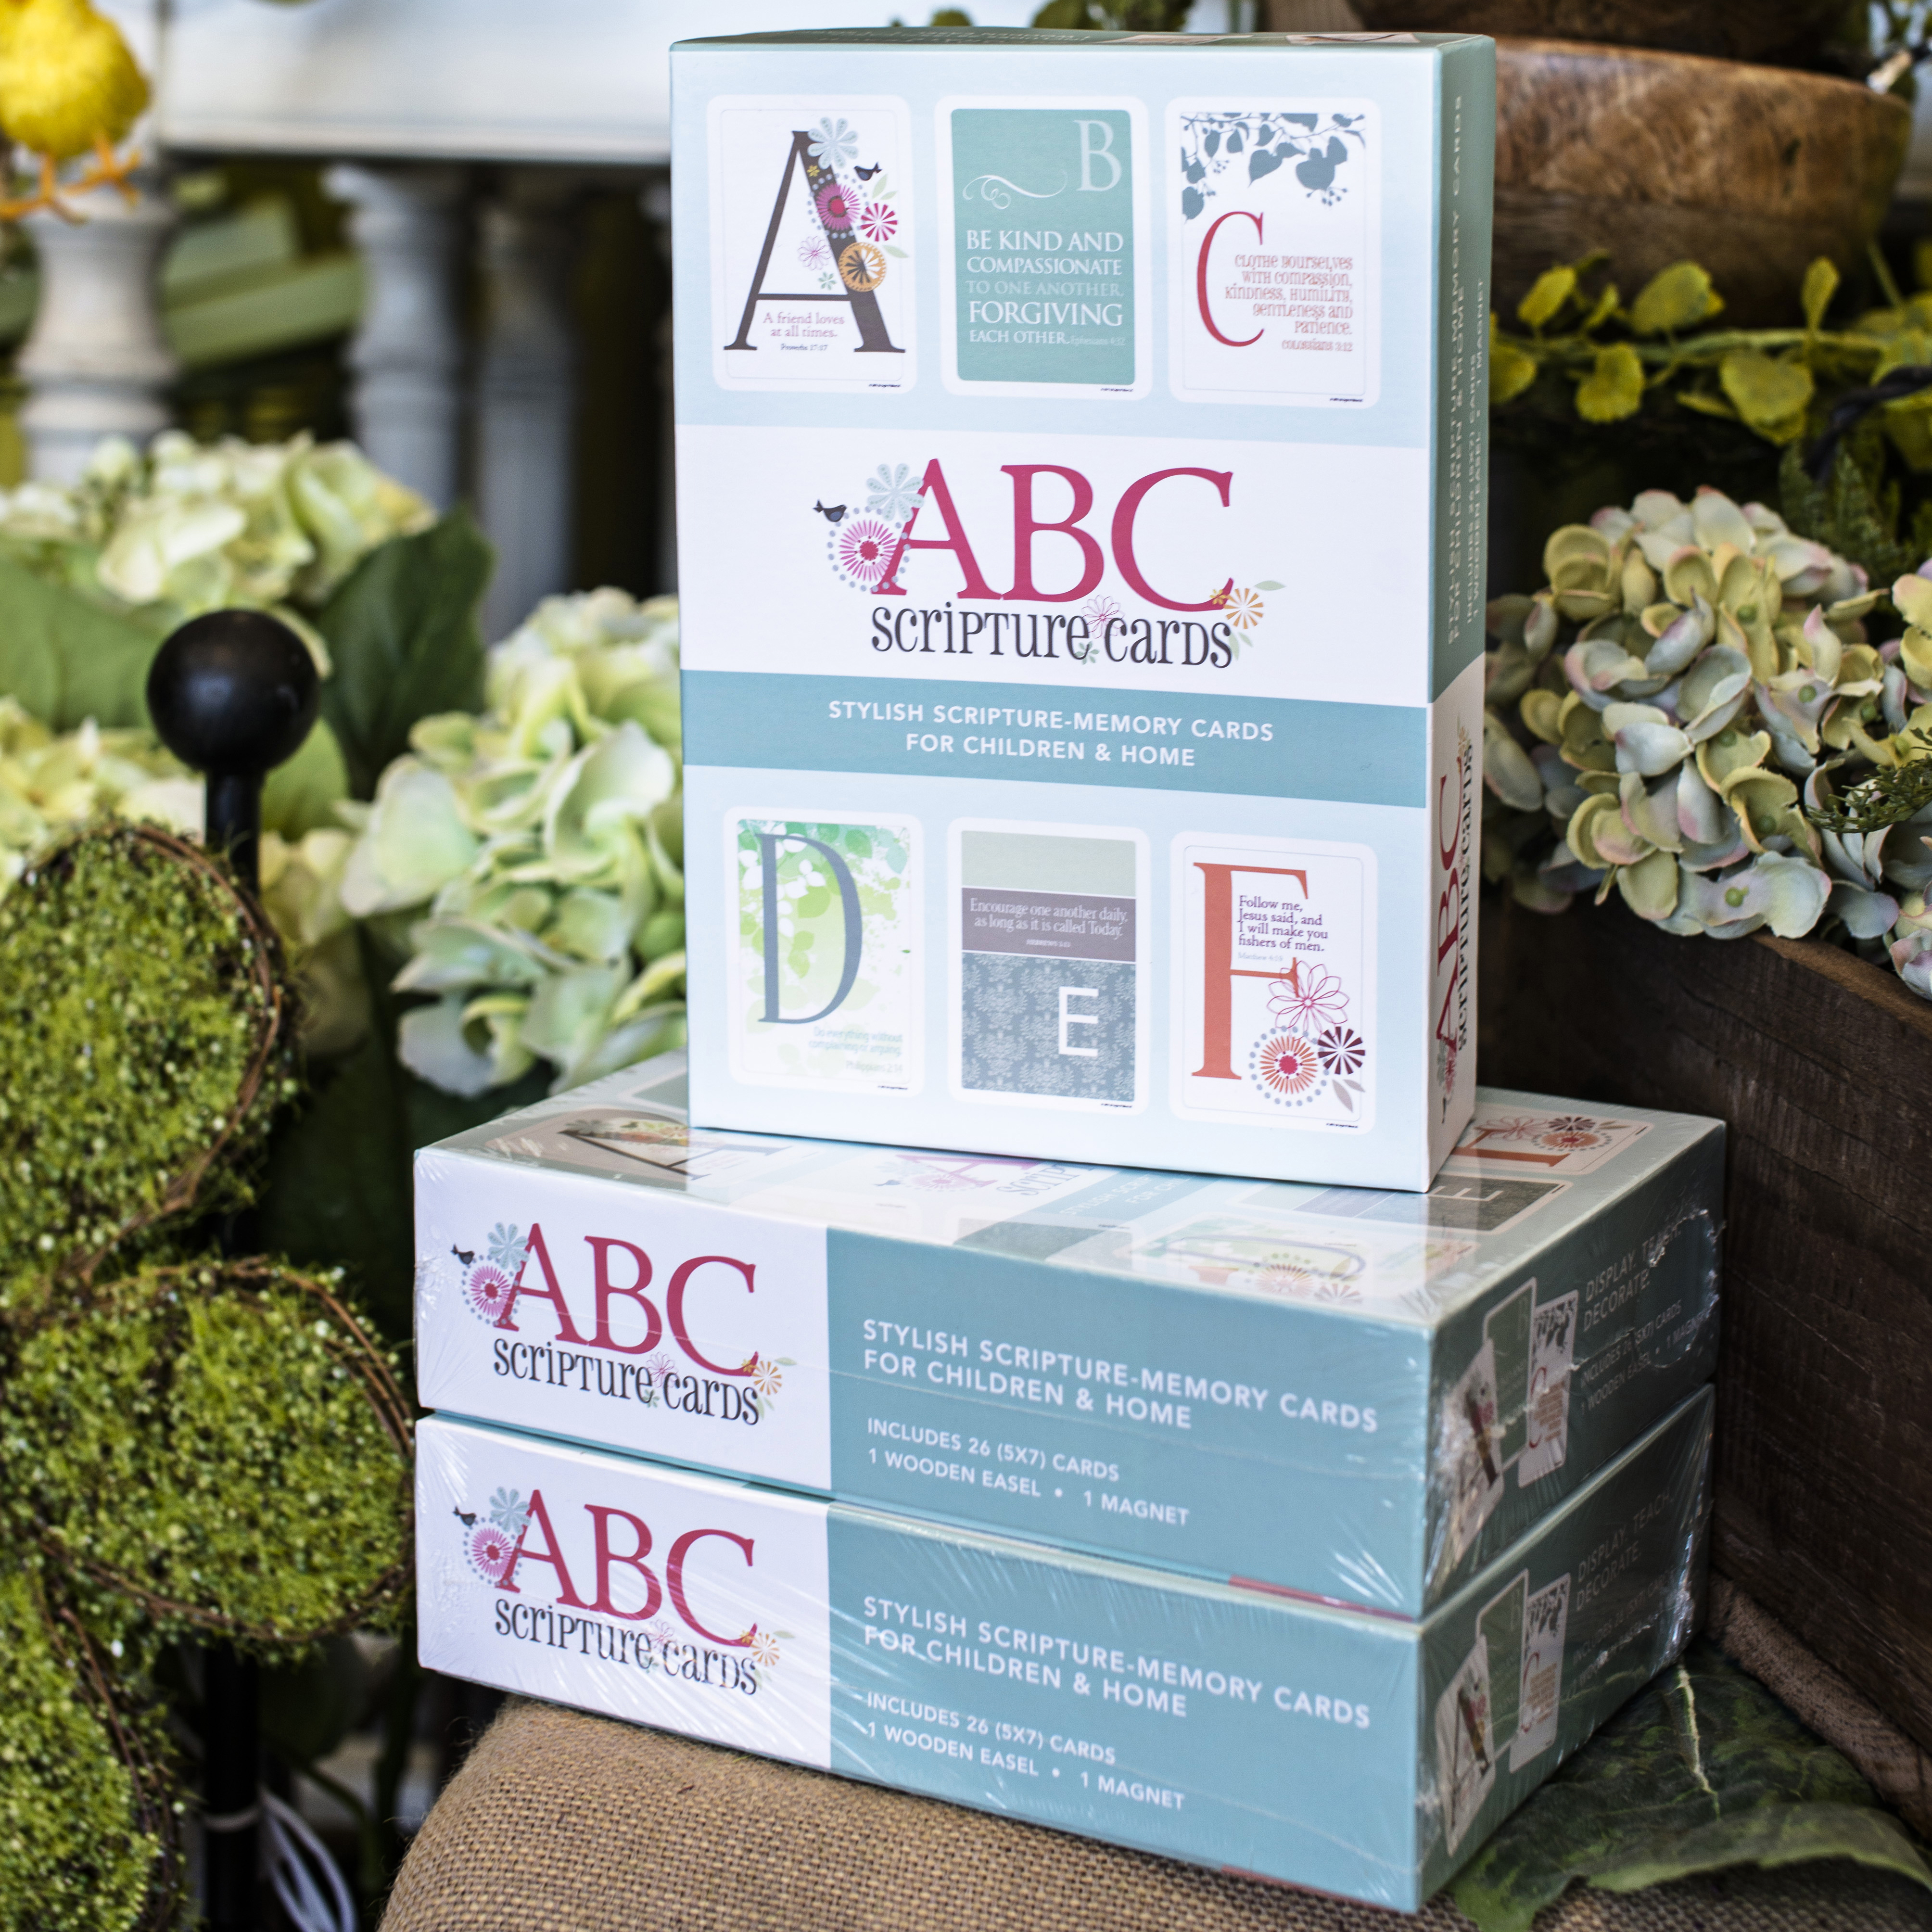 ABC Scripture Cards CDef_ABC